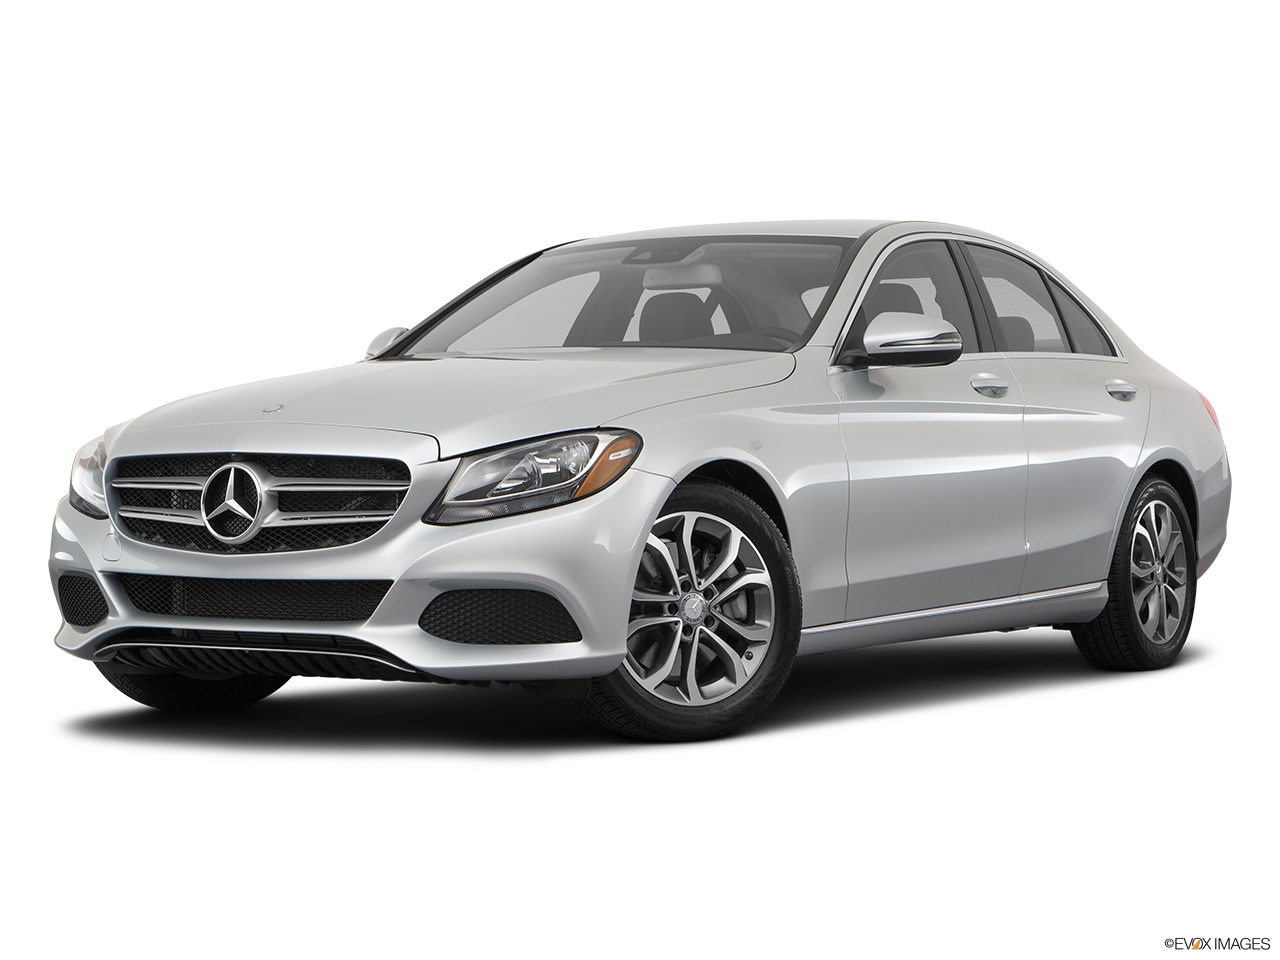 Car pictures list for mercedes benz c class 2017 c 400 for Mercedes benz list of cars